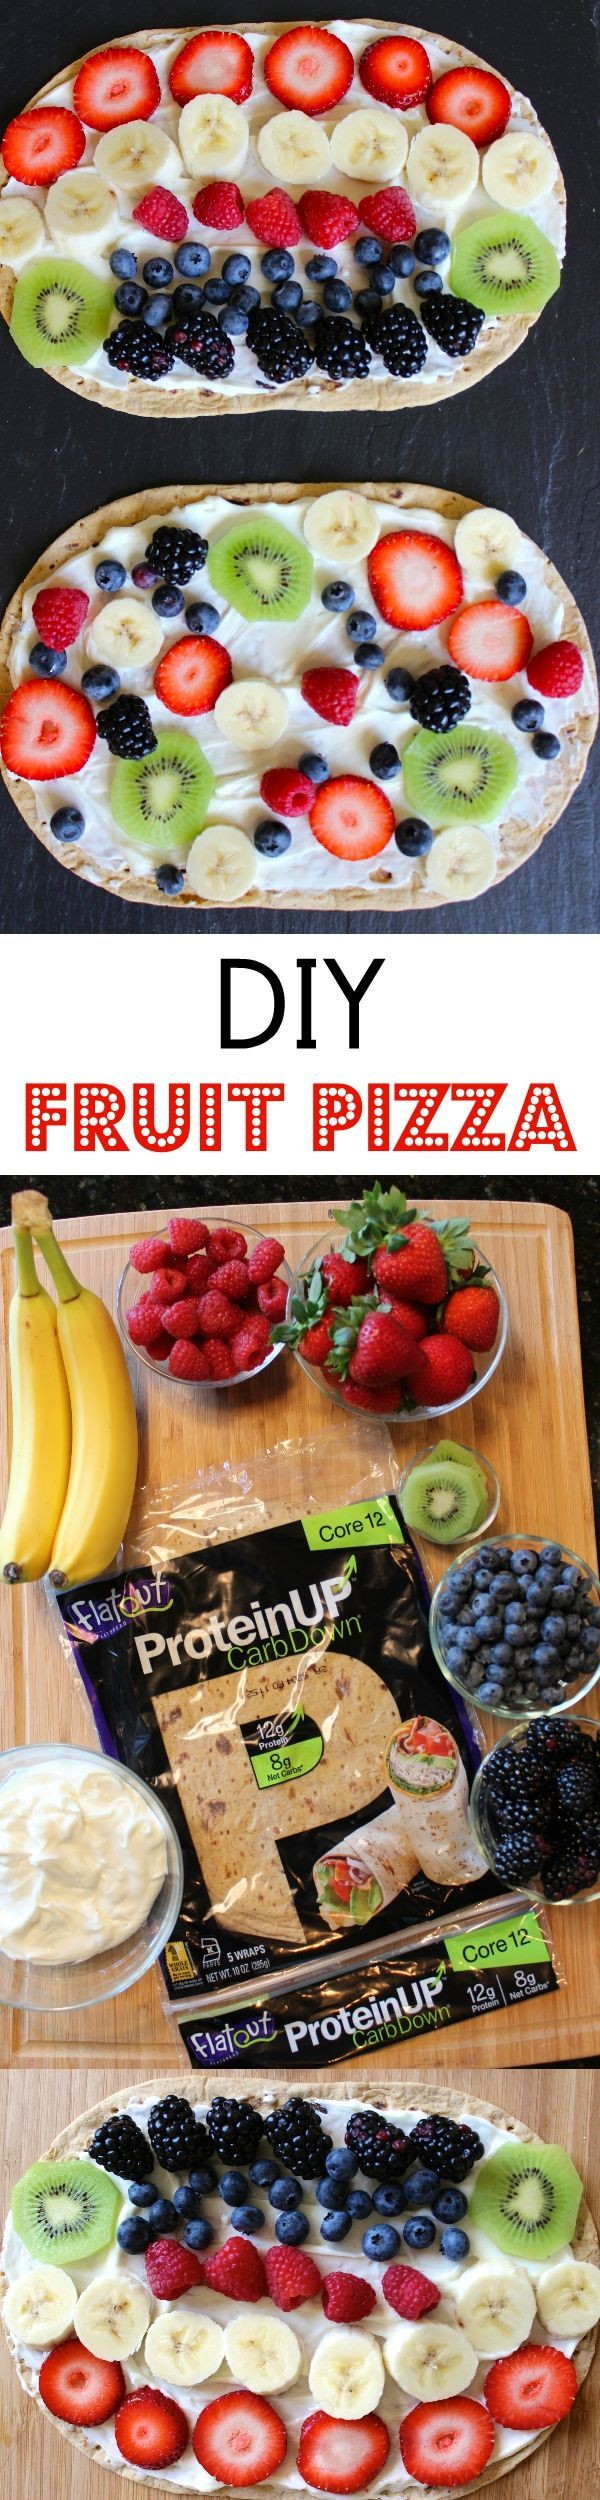 DIY Fruit Pizza: using a high protein flatbread from Flatout this yummy fruit pizza is a healthy and delicious snack for kids and they can customize by using their favorite fruits!